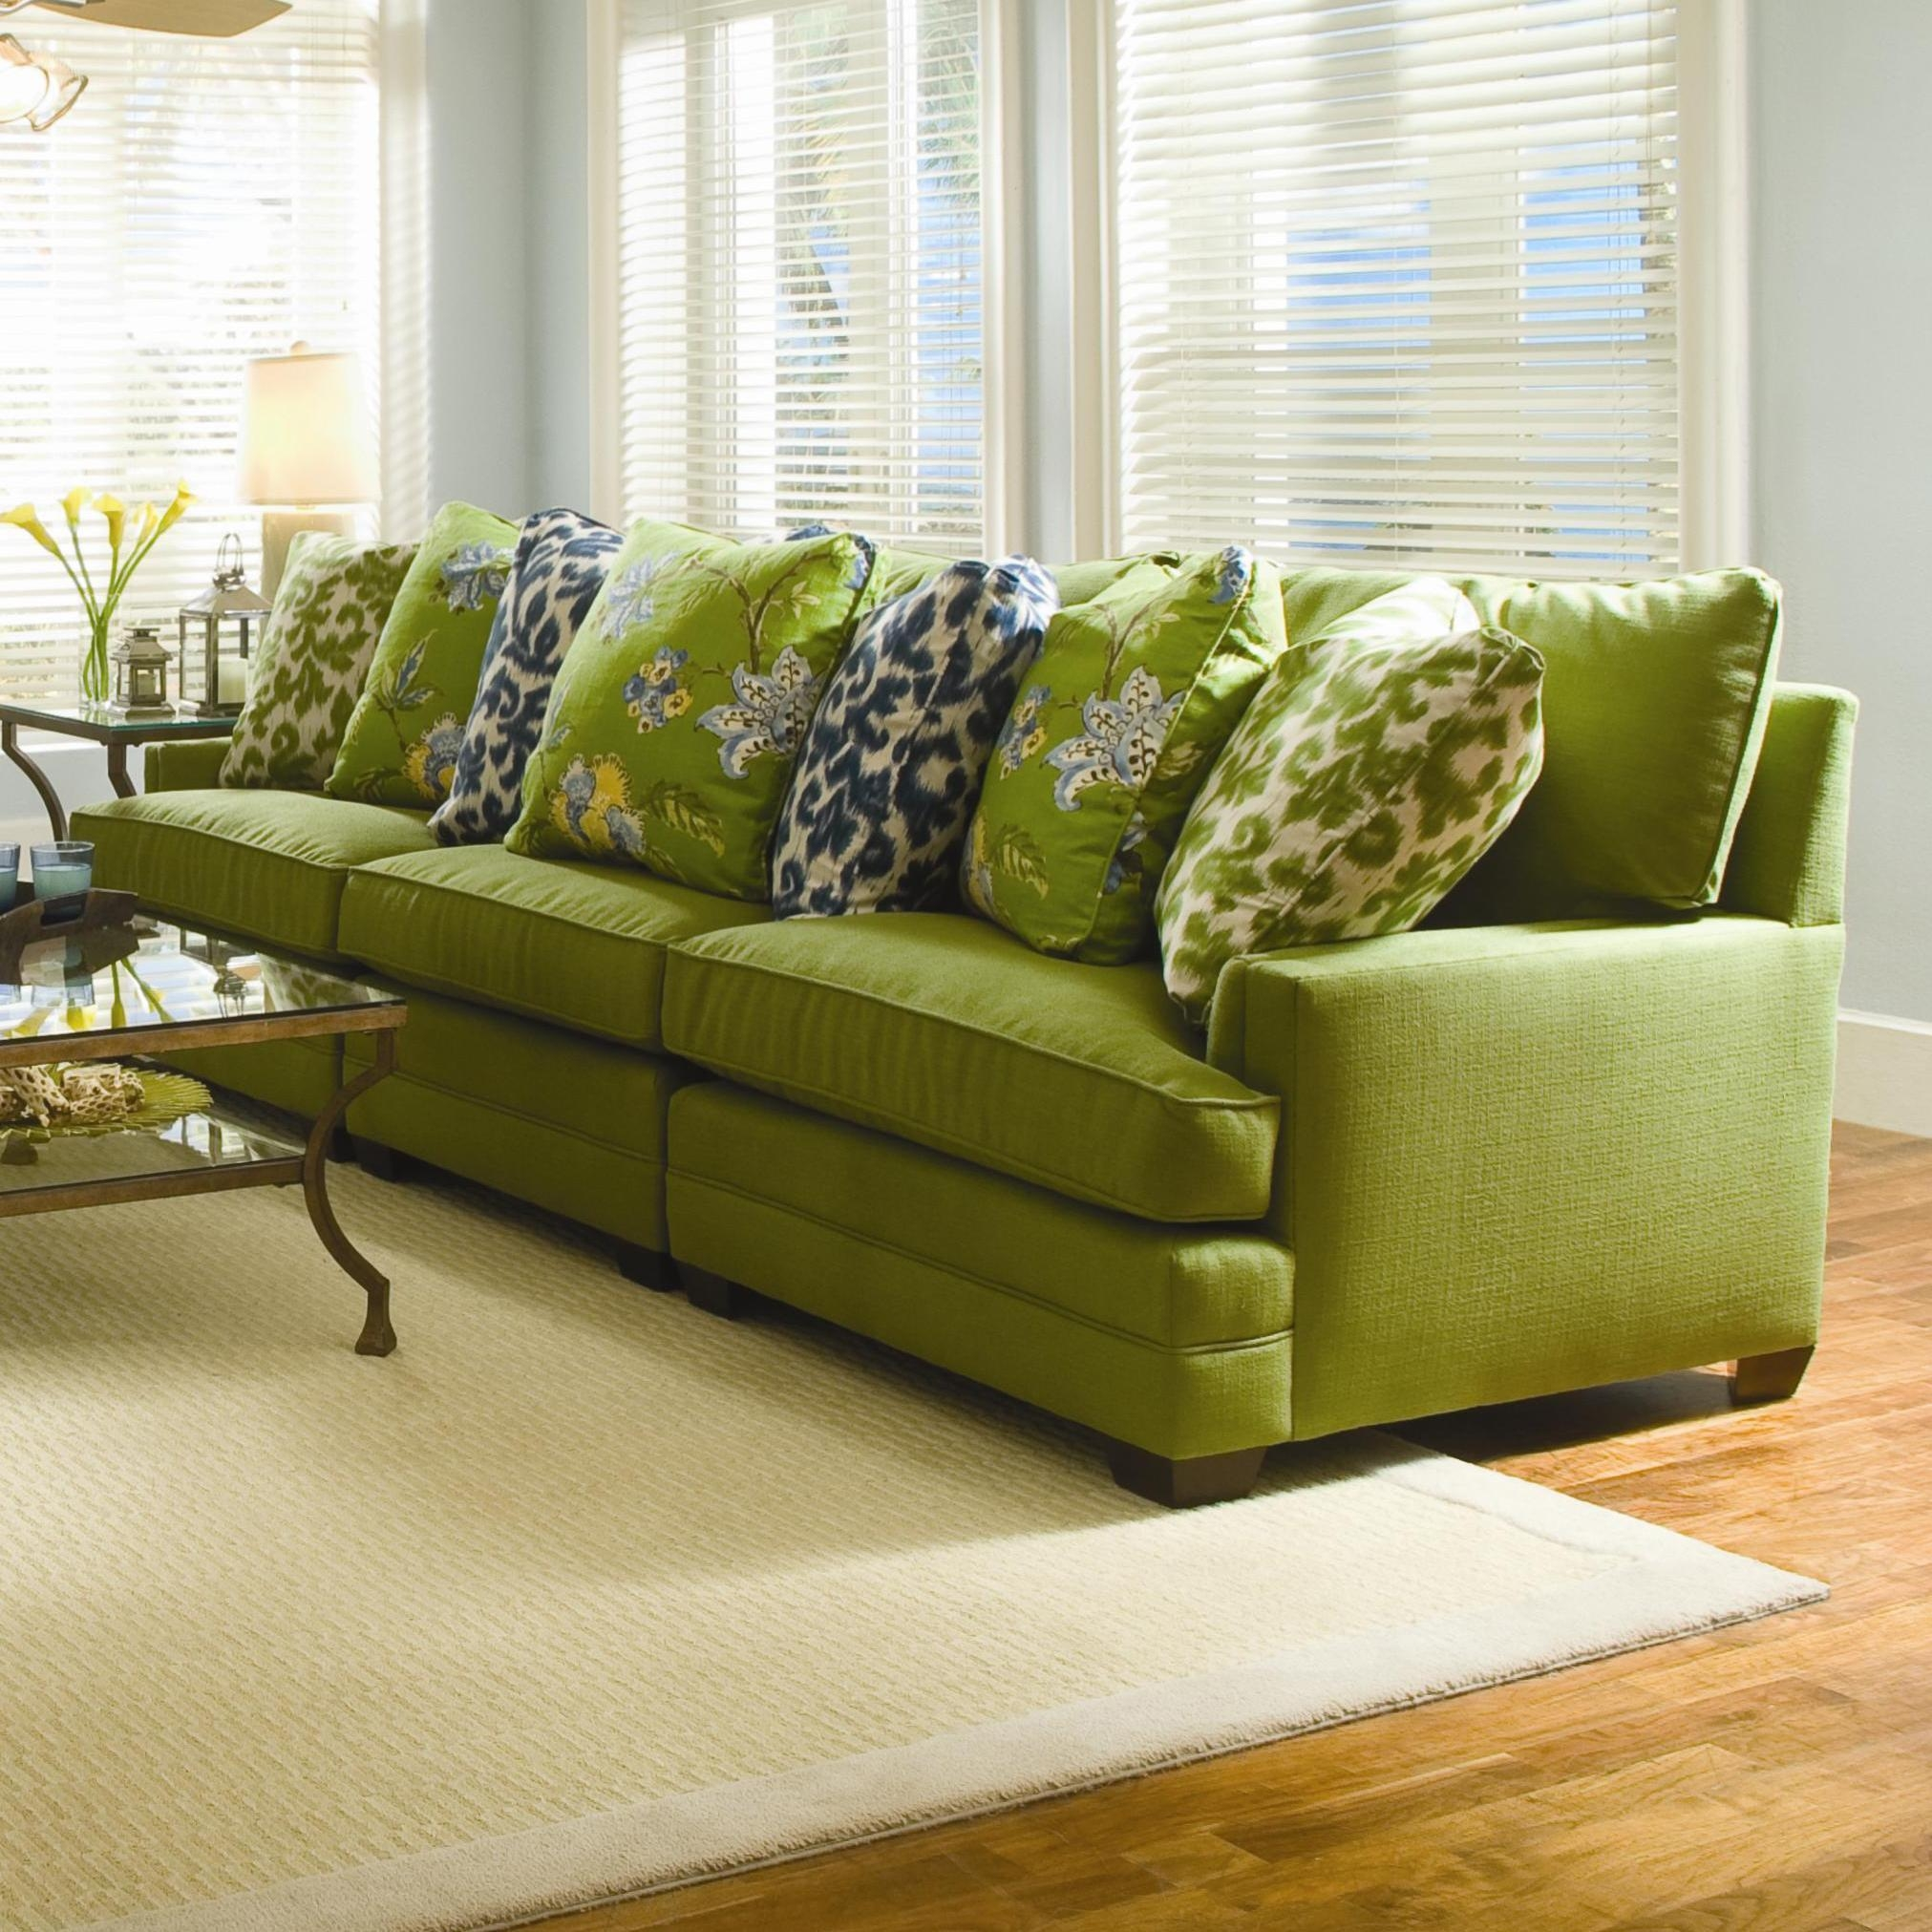 Extra Wide Sectional Sofasam Moore | Wolf And Gardiner Wolf Intended For Wide Seat Sectional Sofas (Image 8 of 20)